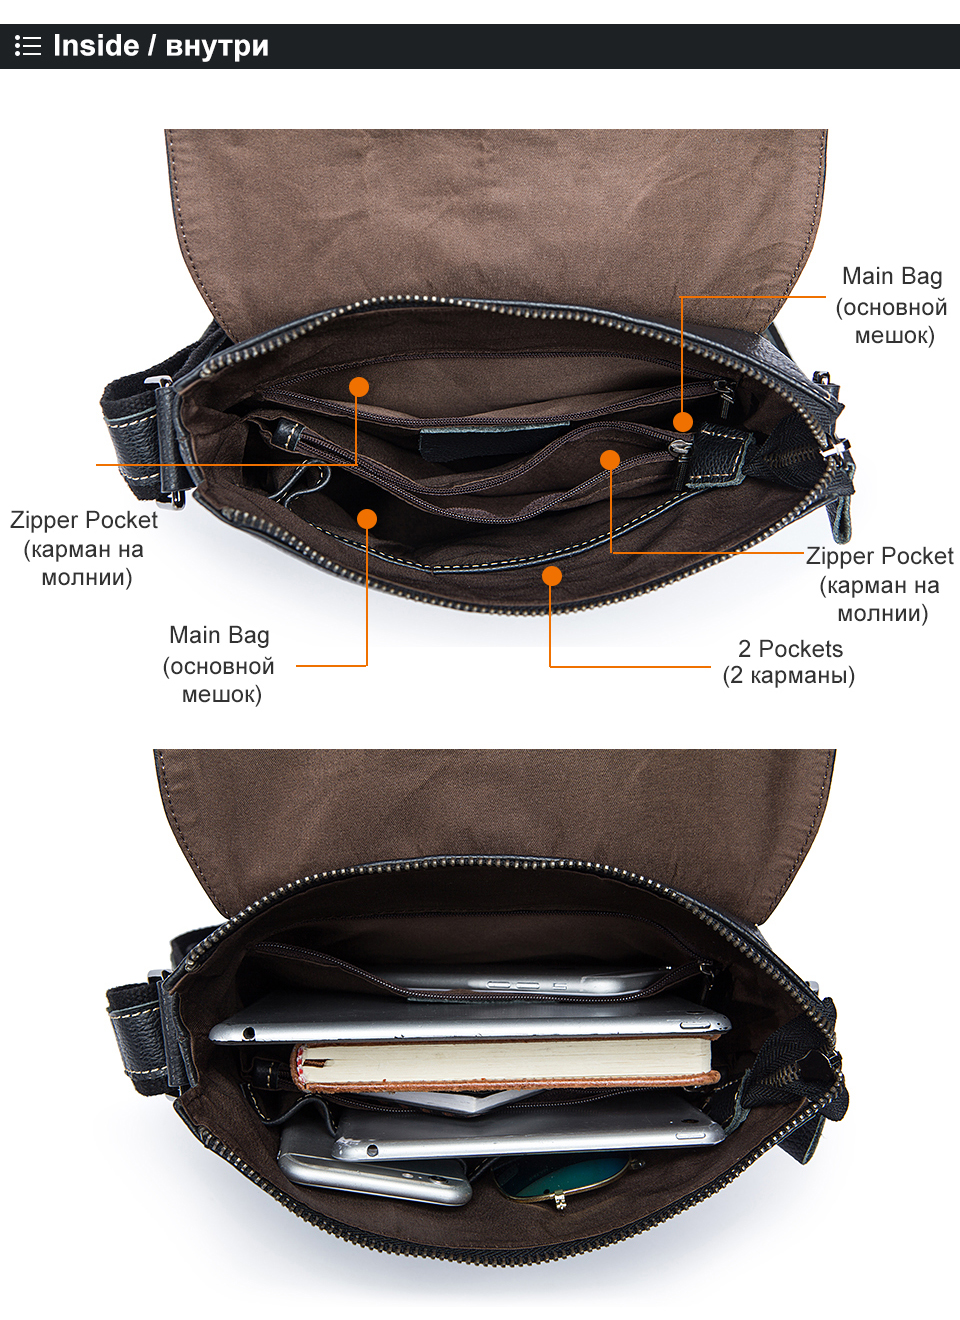 2 geunine leather bags for men